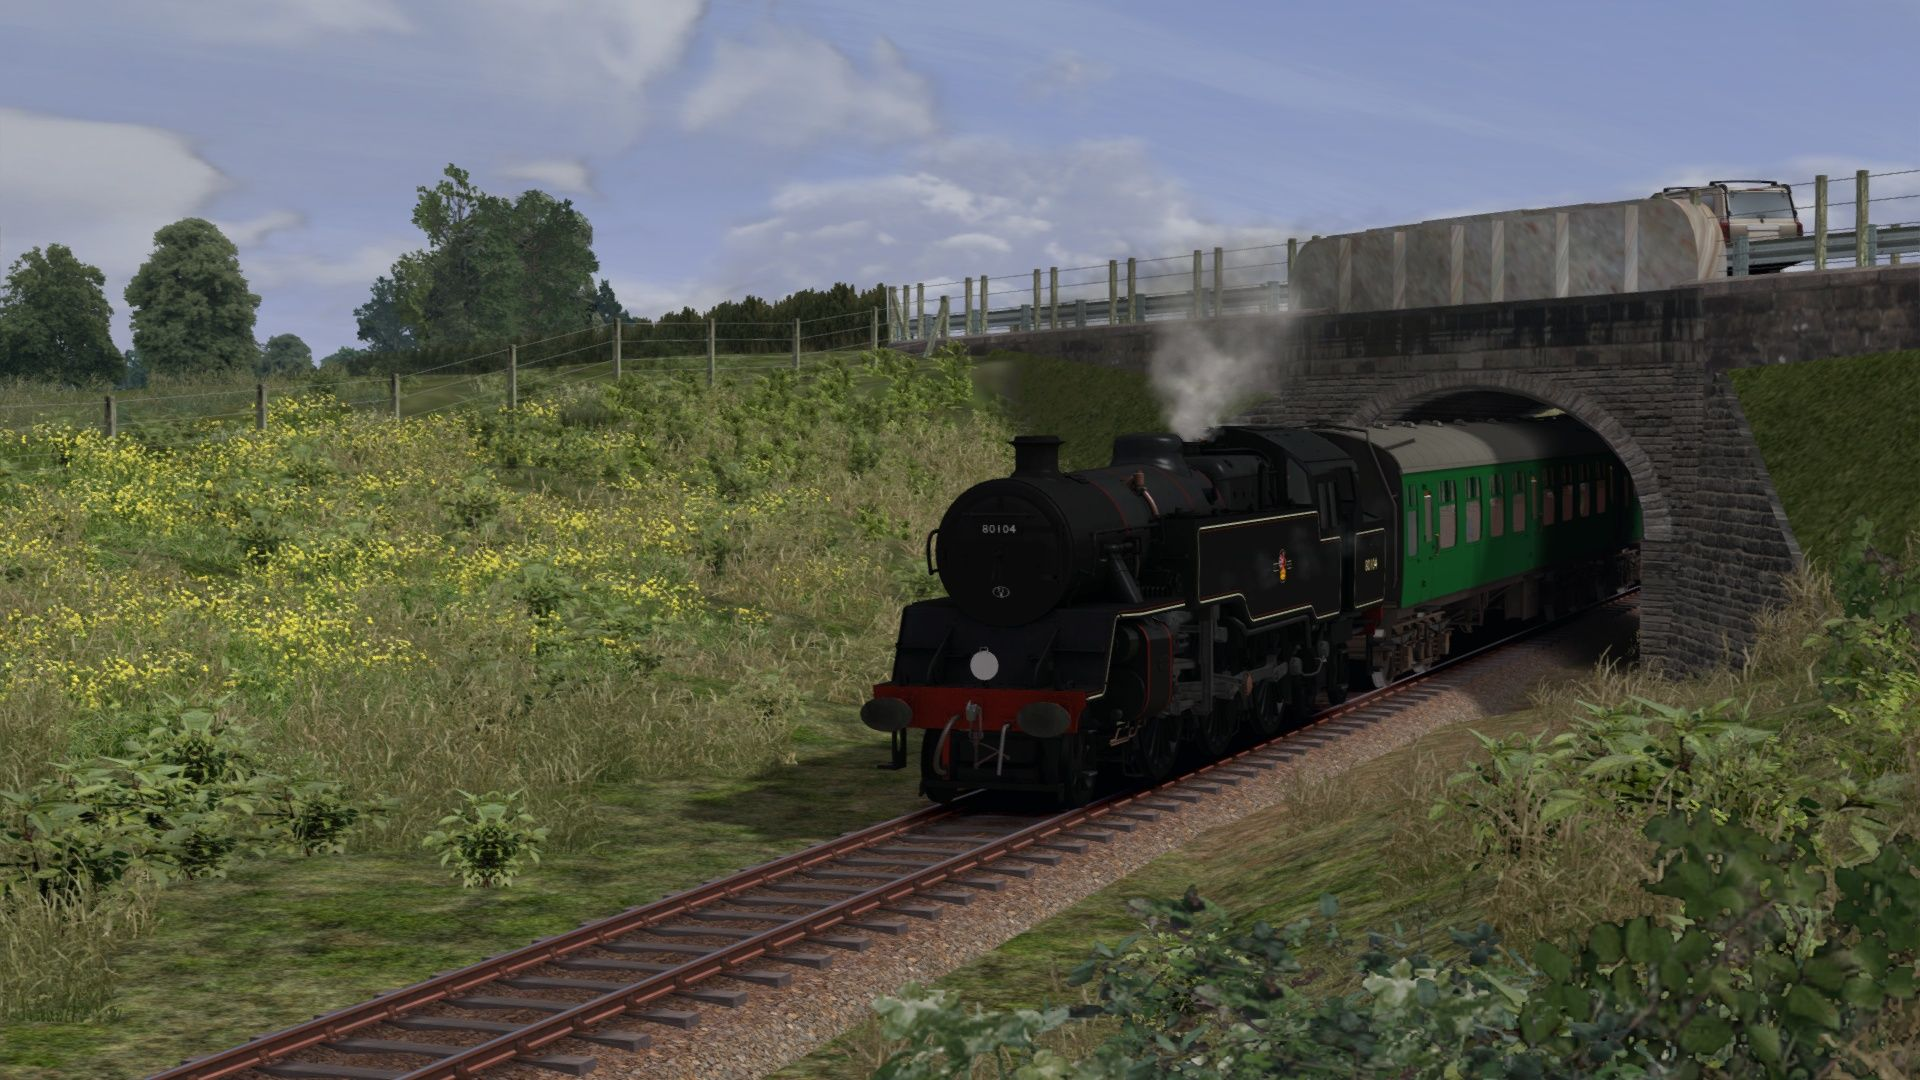 Screenshot_Swanage Railway_50.62601--2.04393_16-15-35